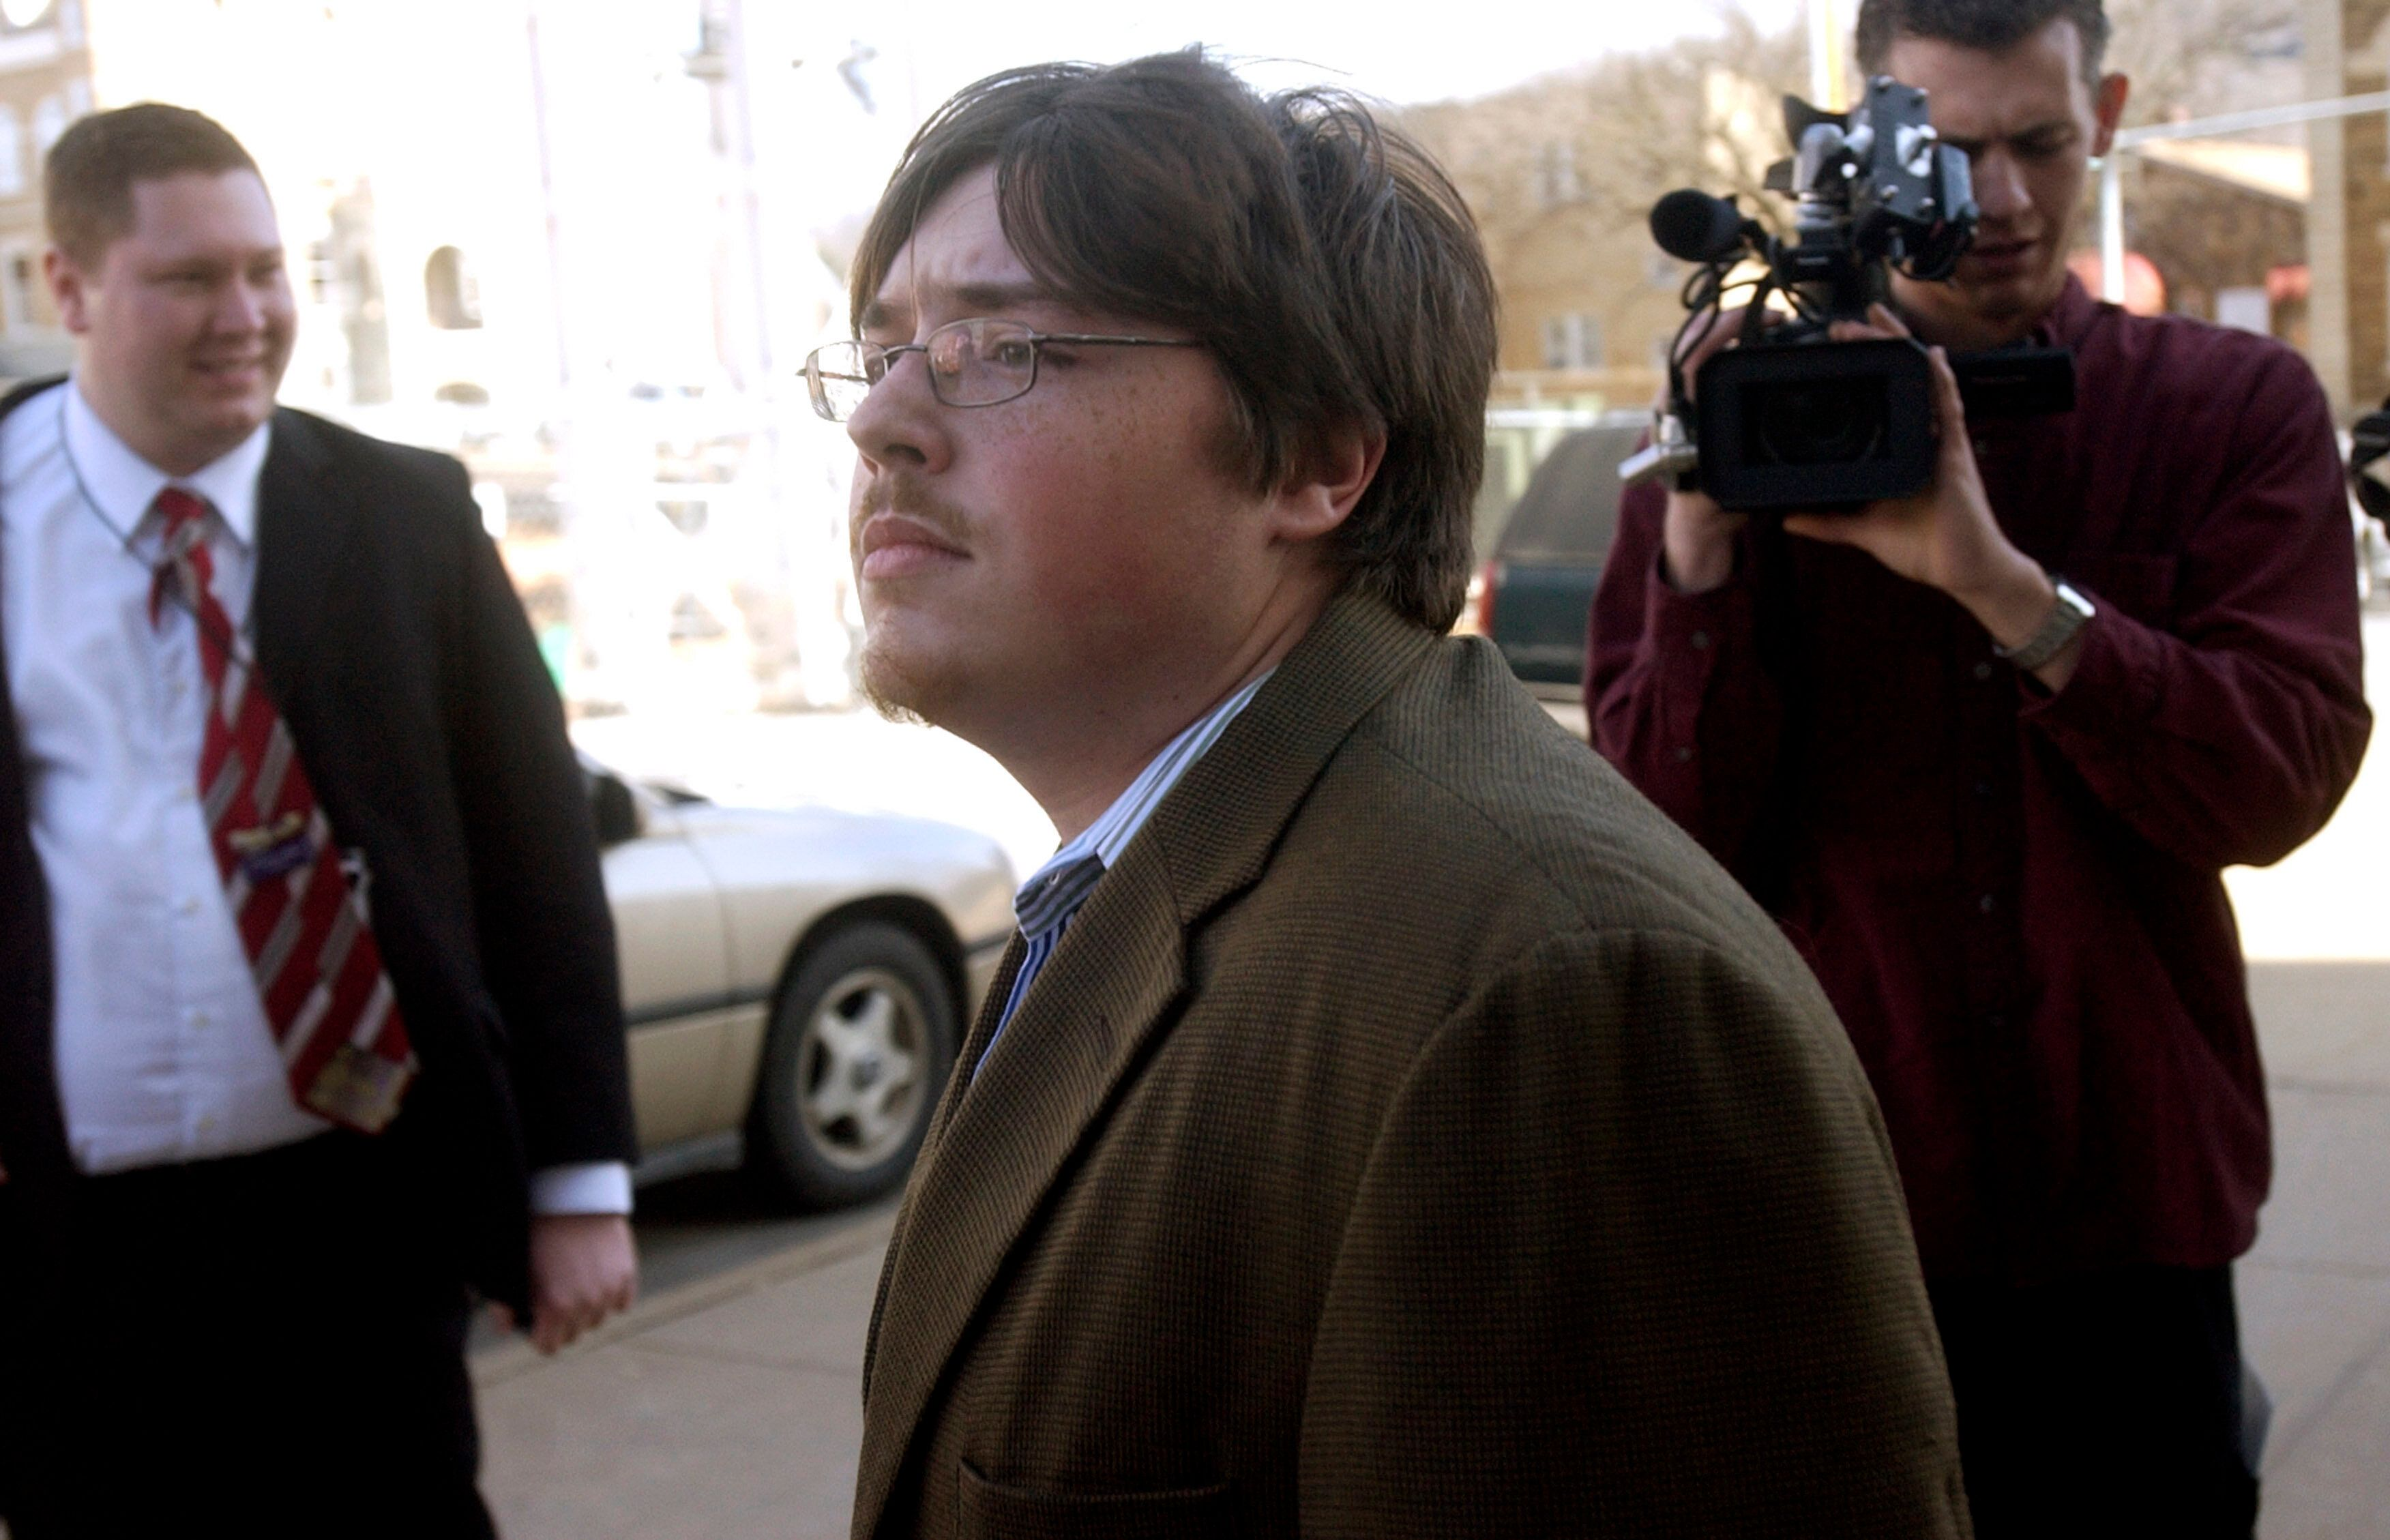 Johnson (center) walks past members of the media during his 2008 trial in Fayetteville, Arkansas, forpossession of a fi